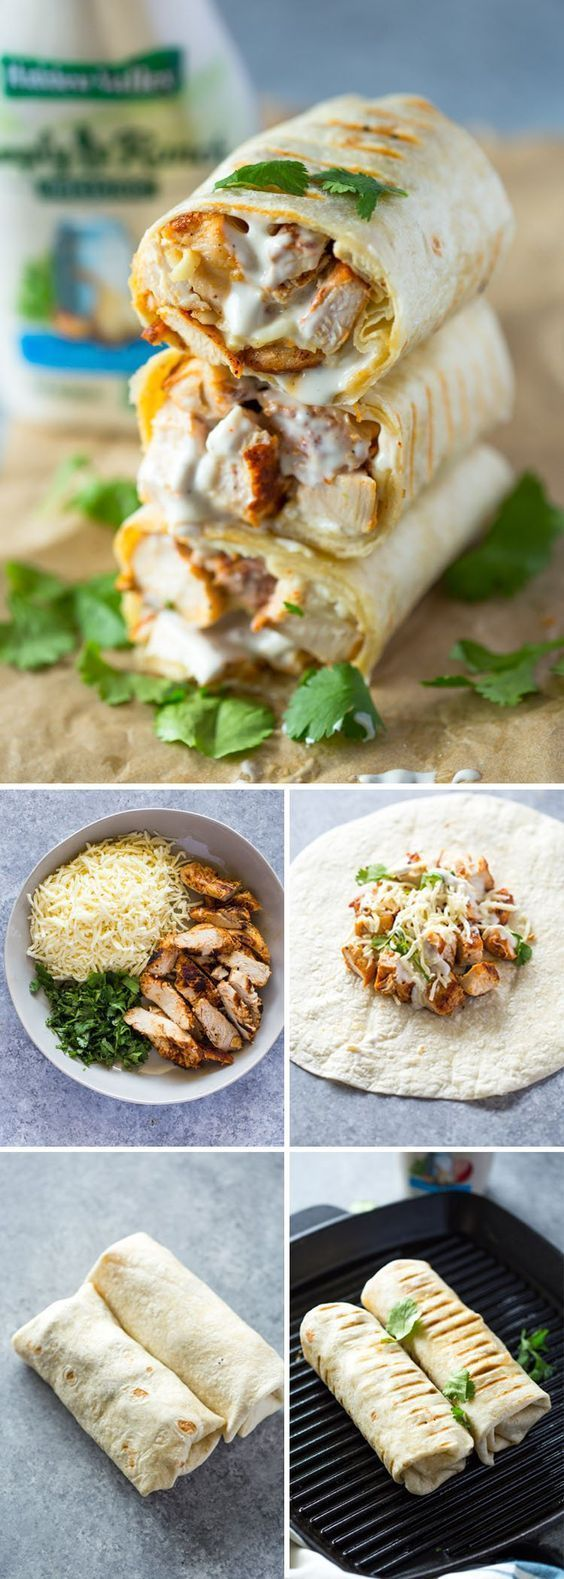 Chicken Ranch Wraps #mealprep #cozyhome